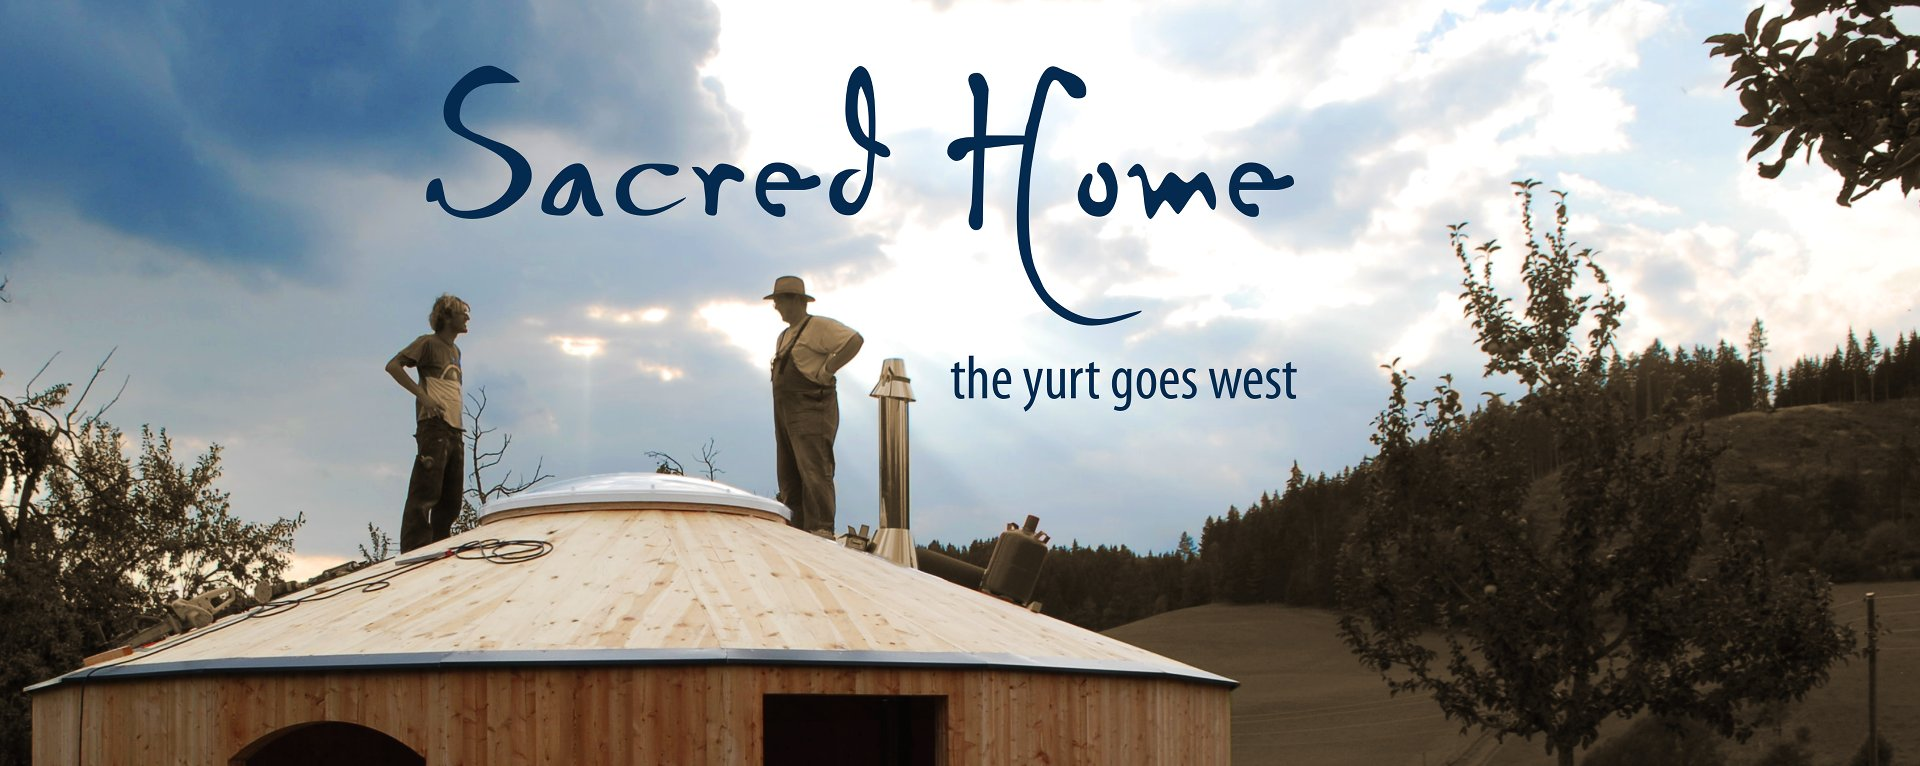 Sacred Home - the yurt goes west